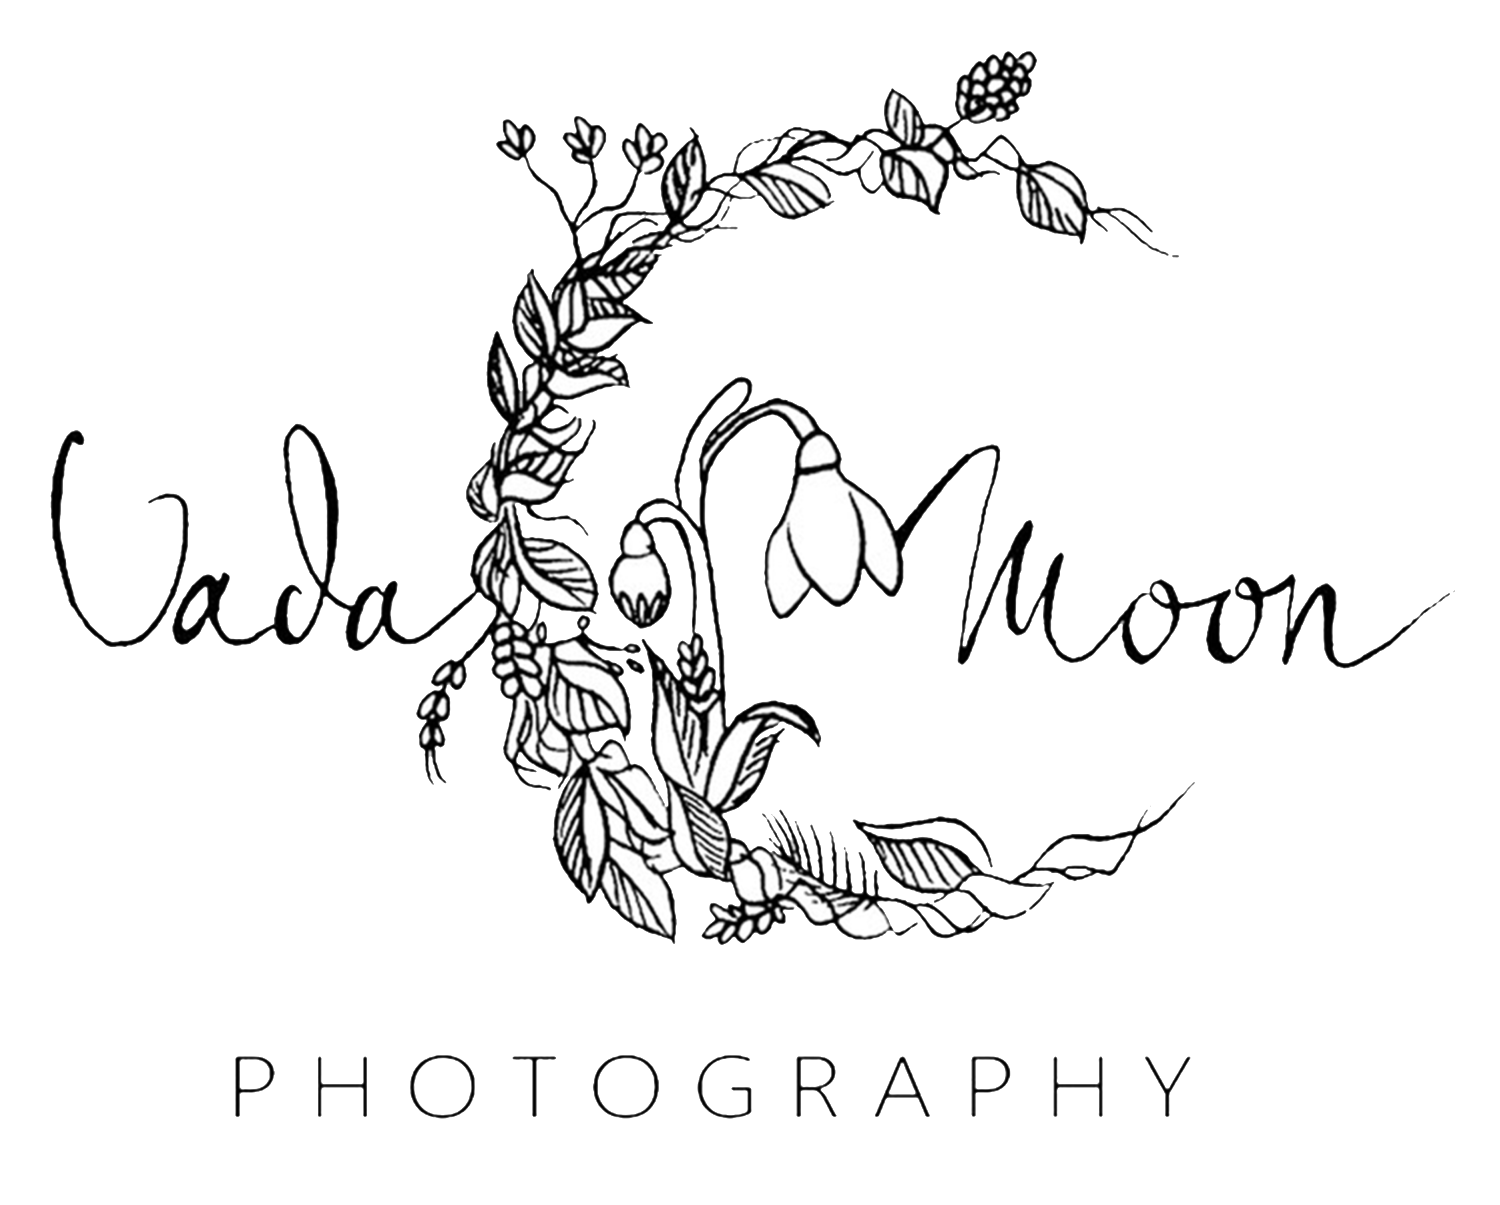 VADA MOON PHOTOGRAPHY